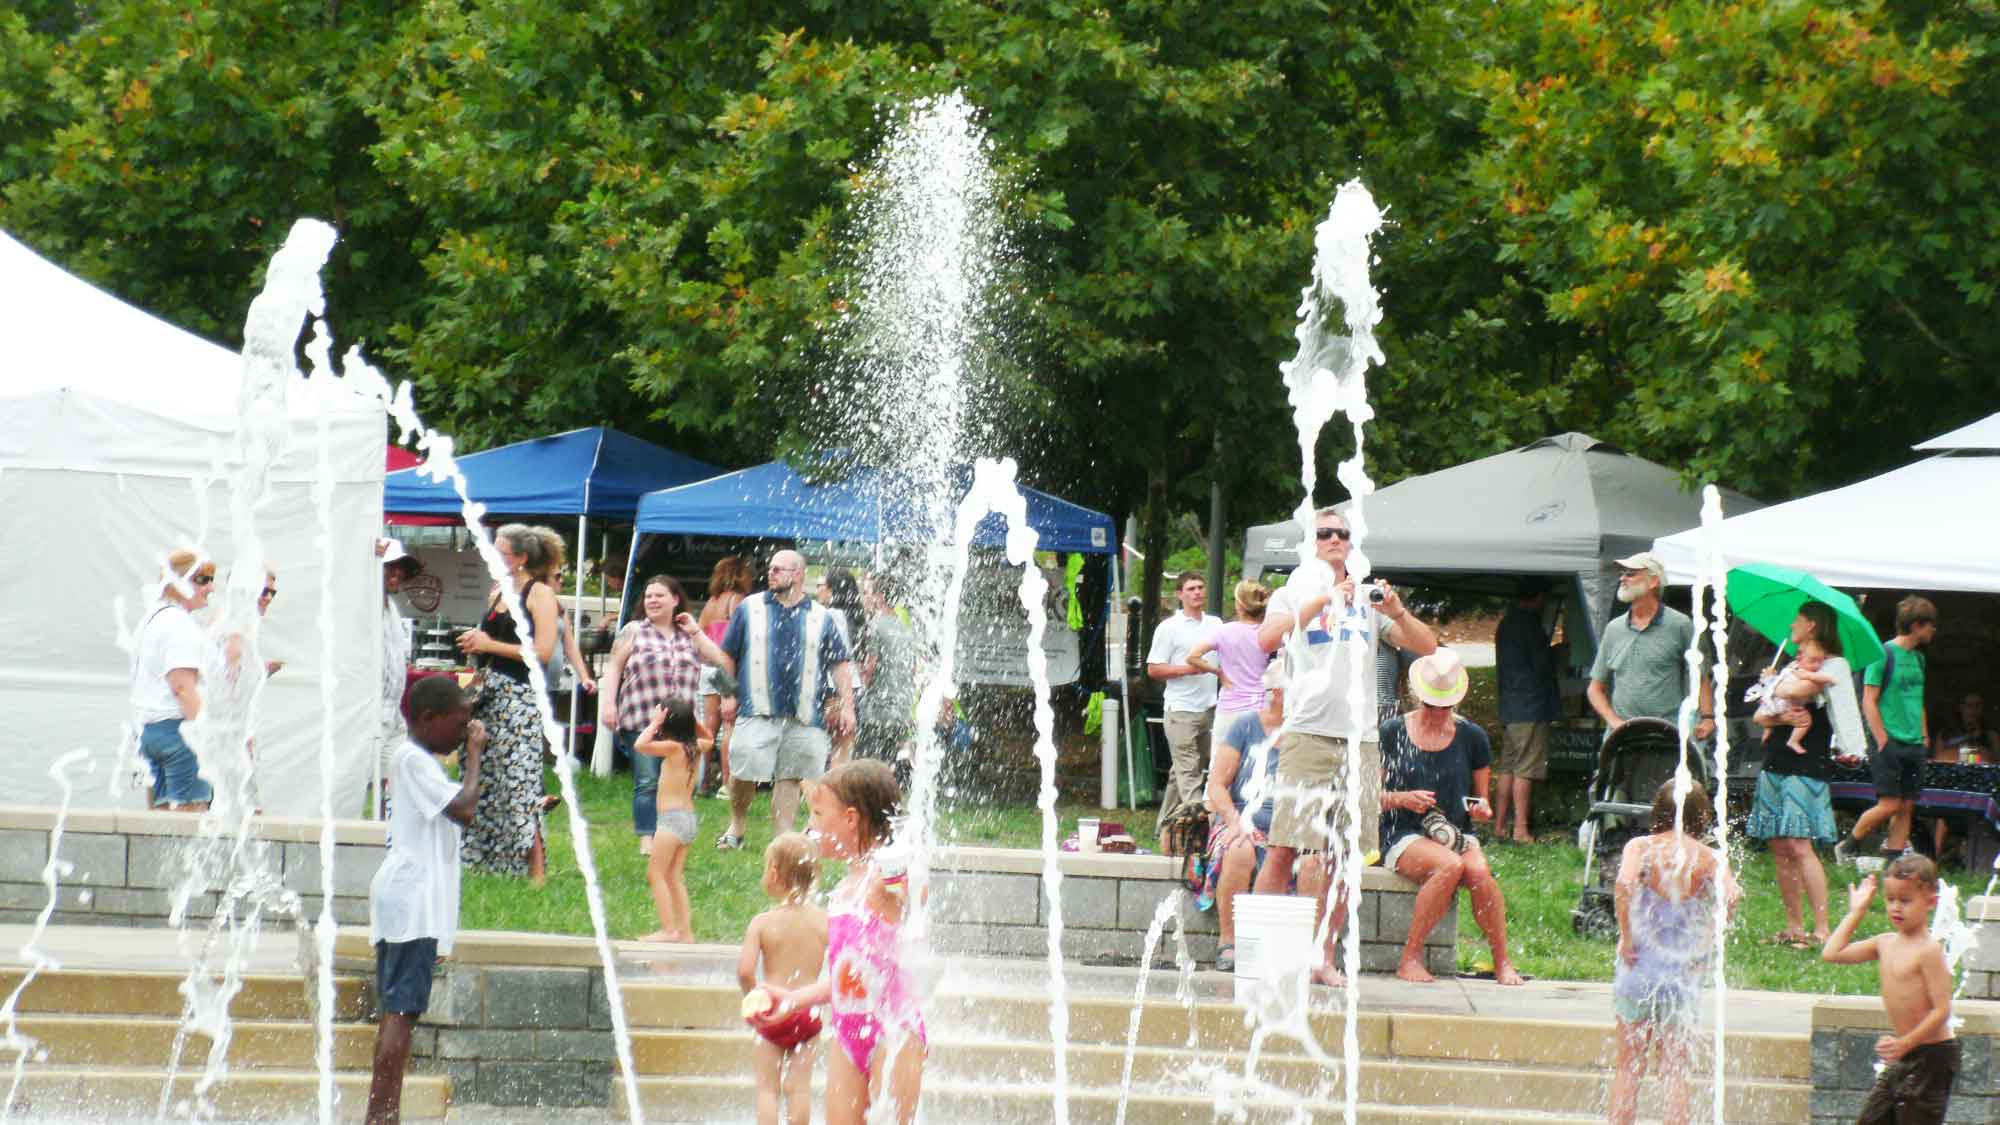 splashville-fun-at-organicfest